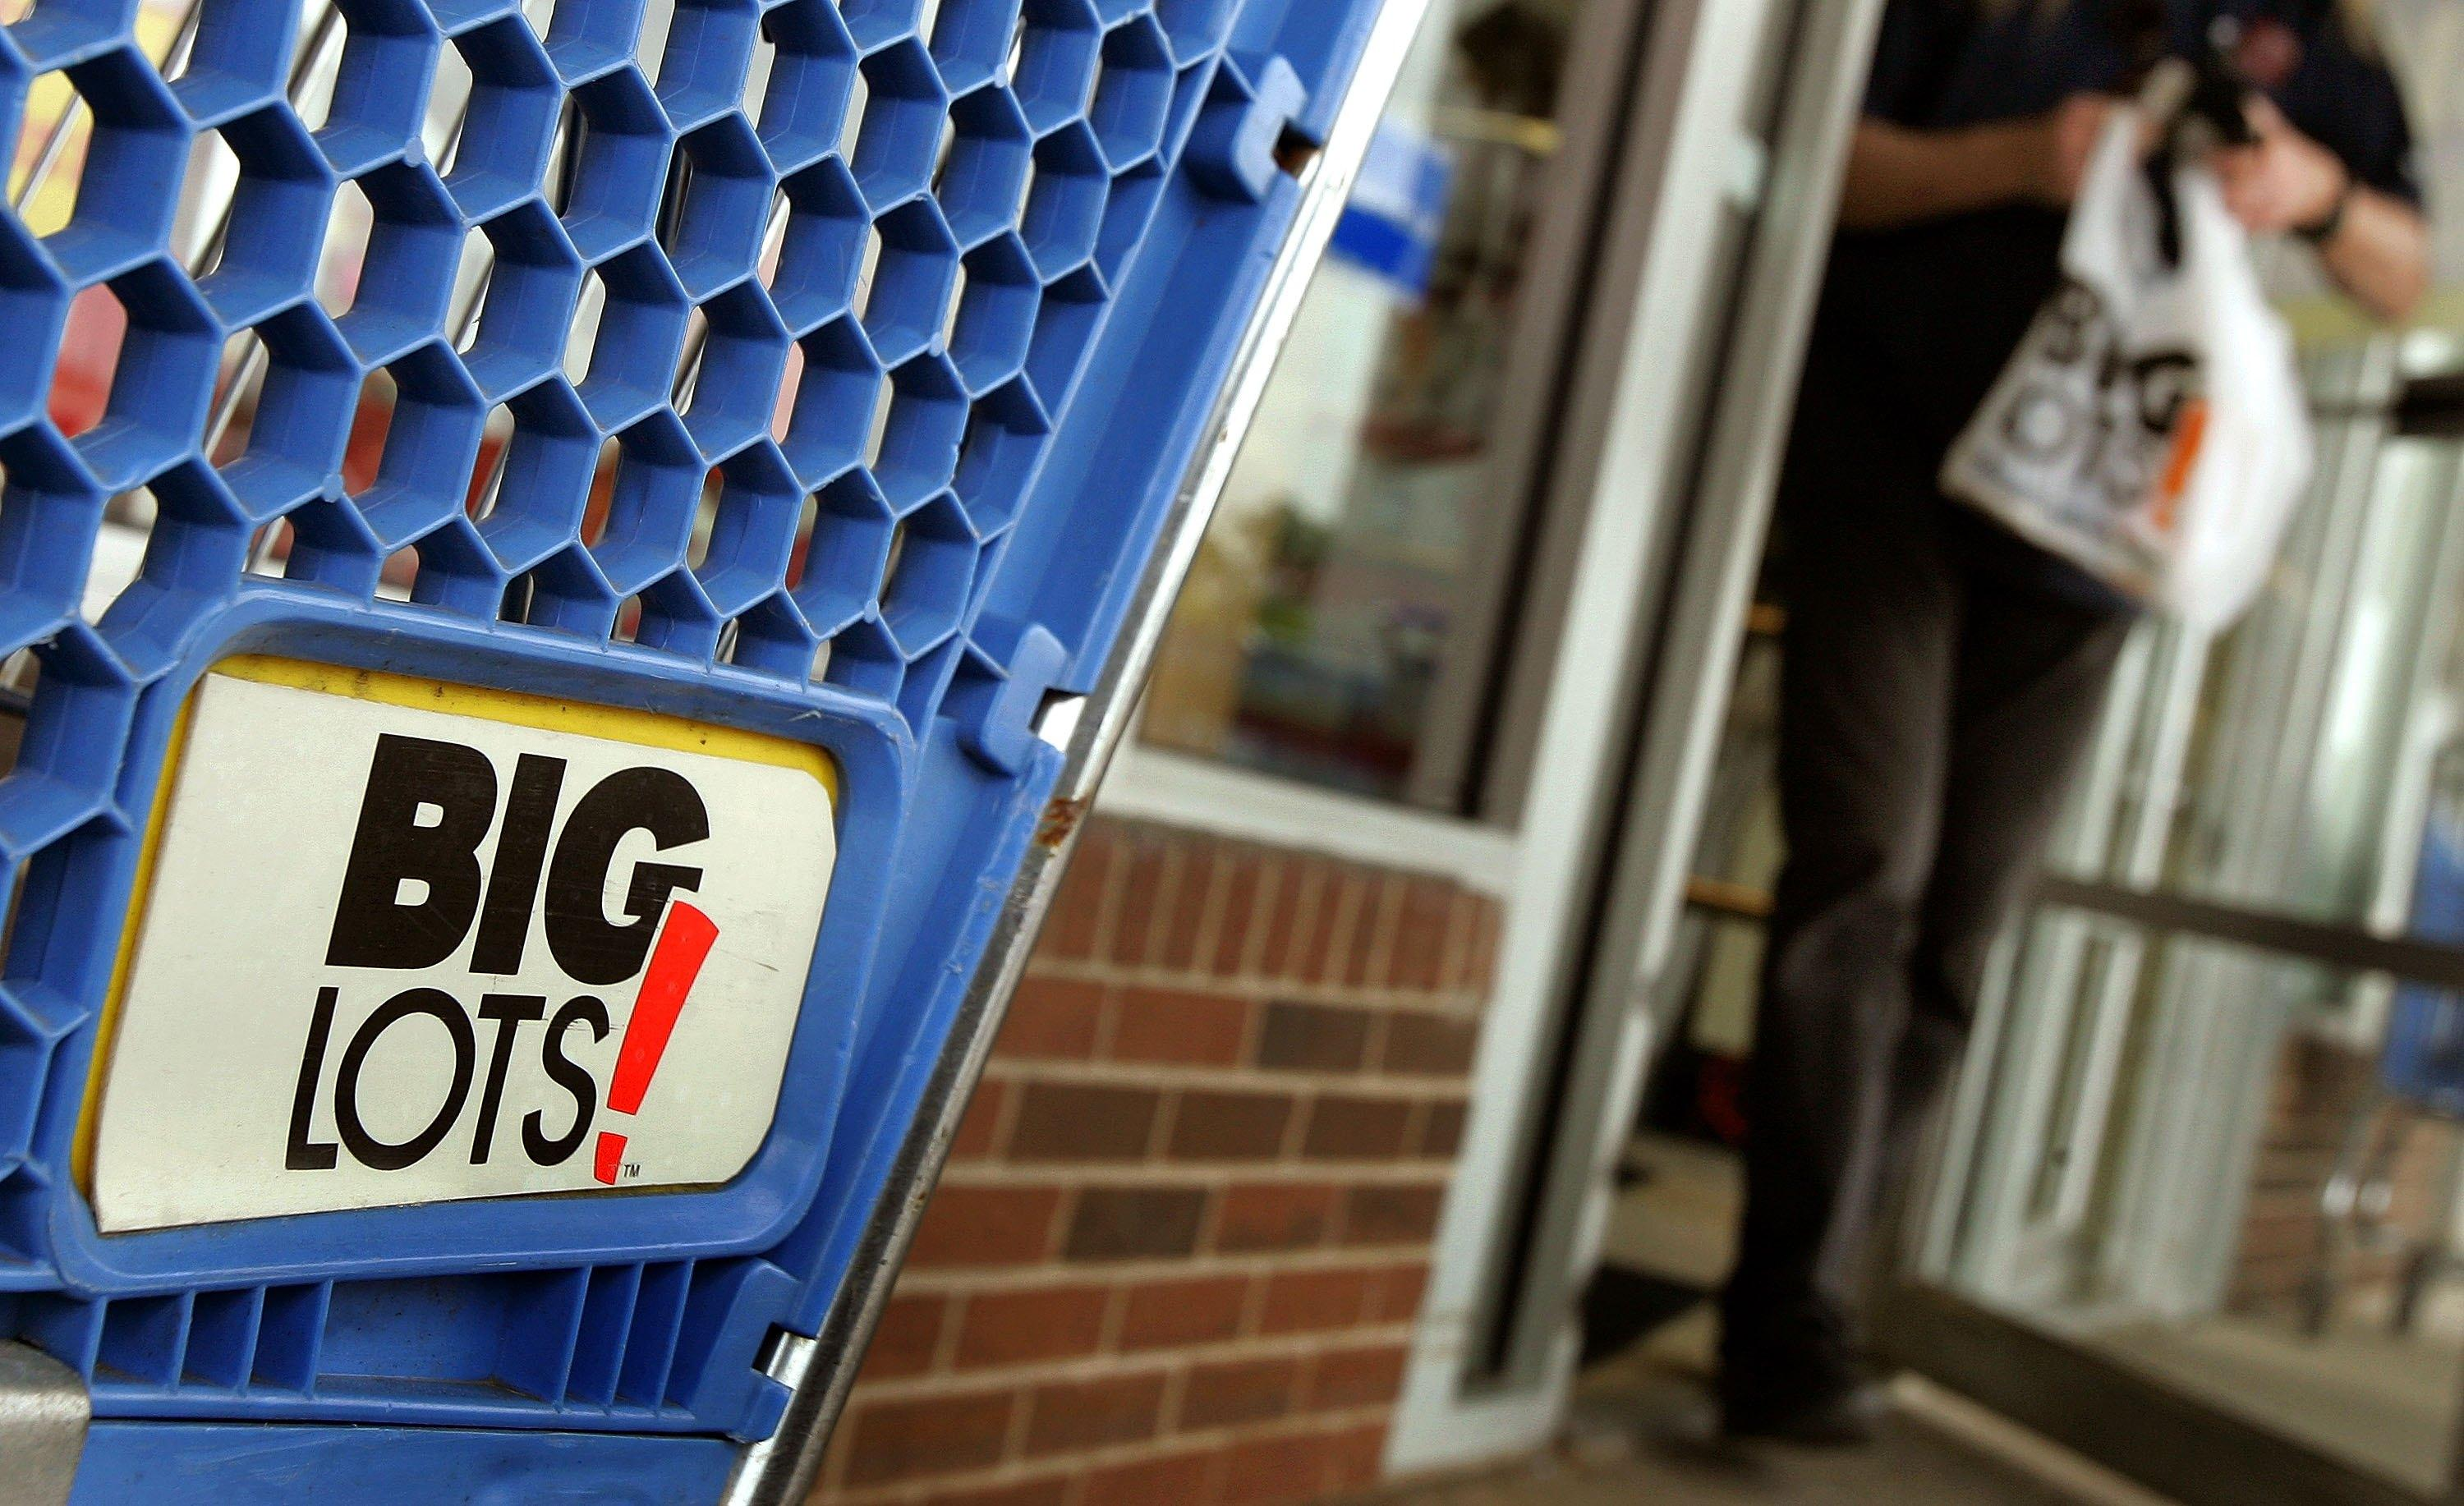 Highlights for Big Lots. Furnishing your home without going over budget is a challenge. Thankfully, Big Lots brings big savings on an epic collection of furniture, electronics, home decor and more.